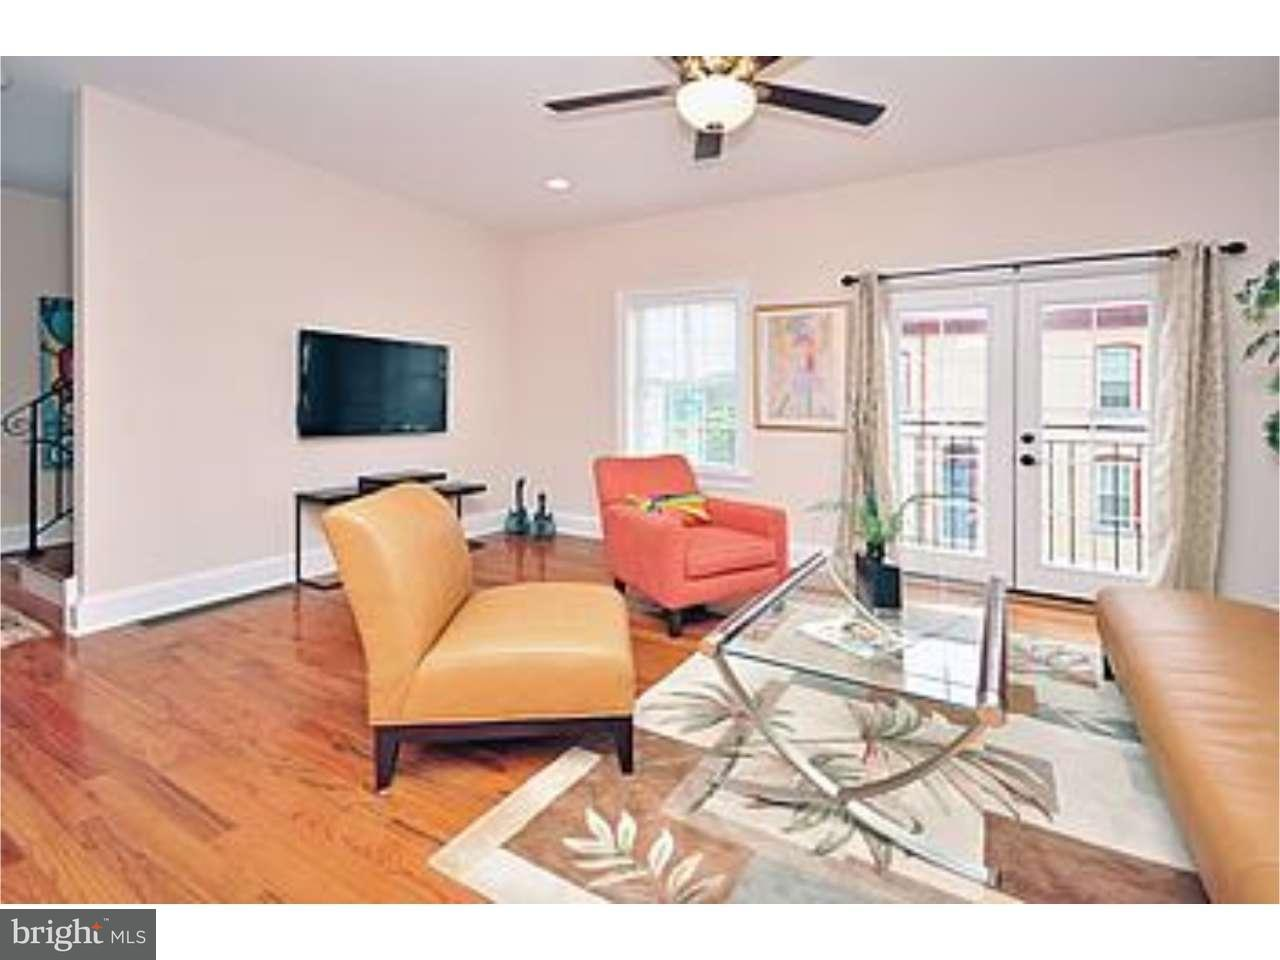 Additional photo for property listing at 537 APPLE ST #001  West Conshohocken, Pennsylvania 19428 United States